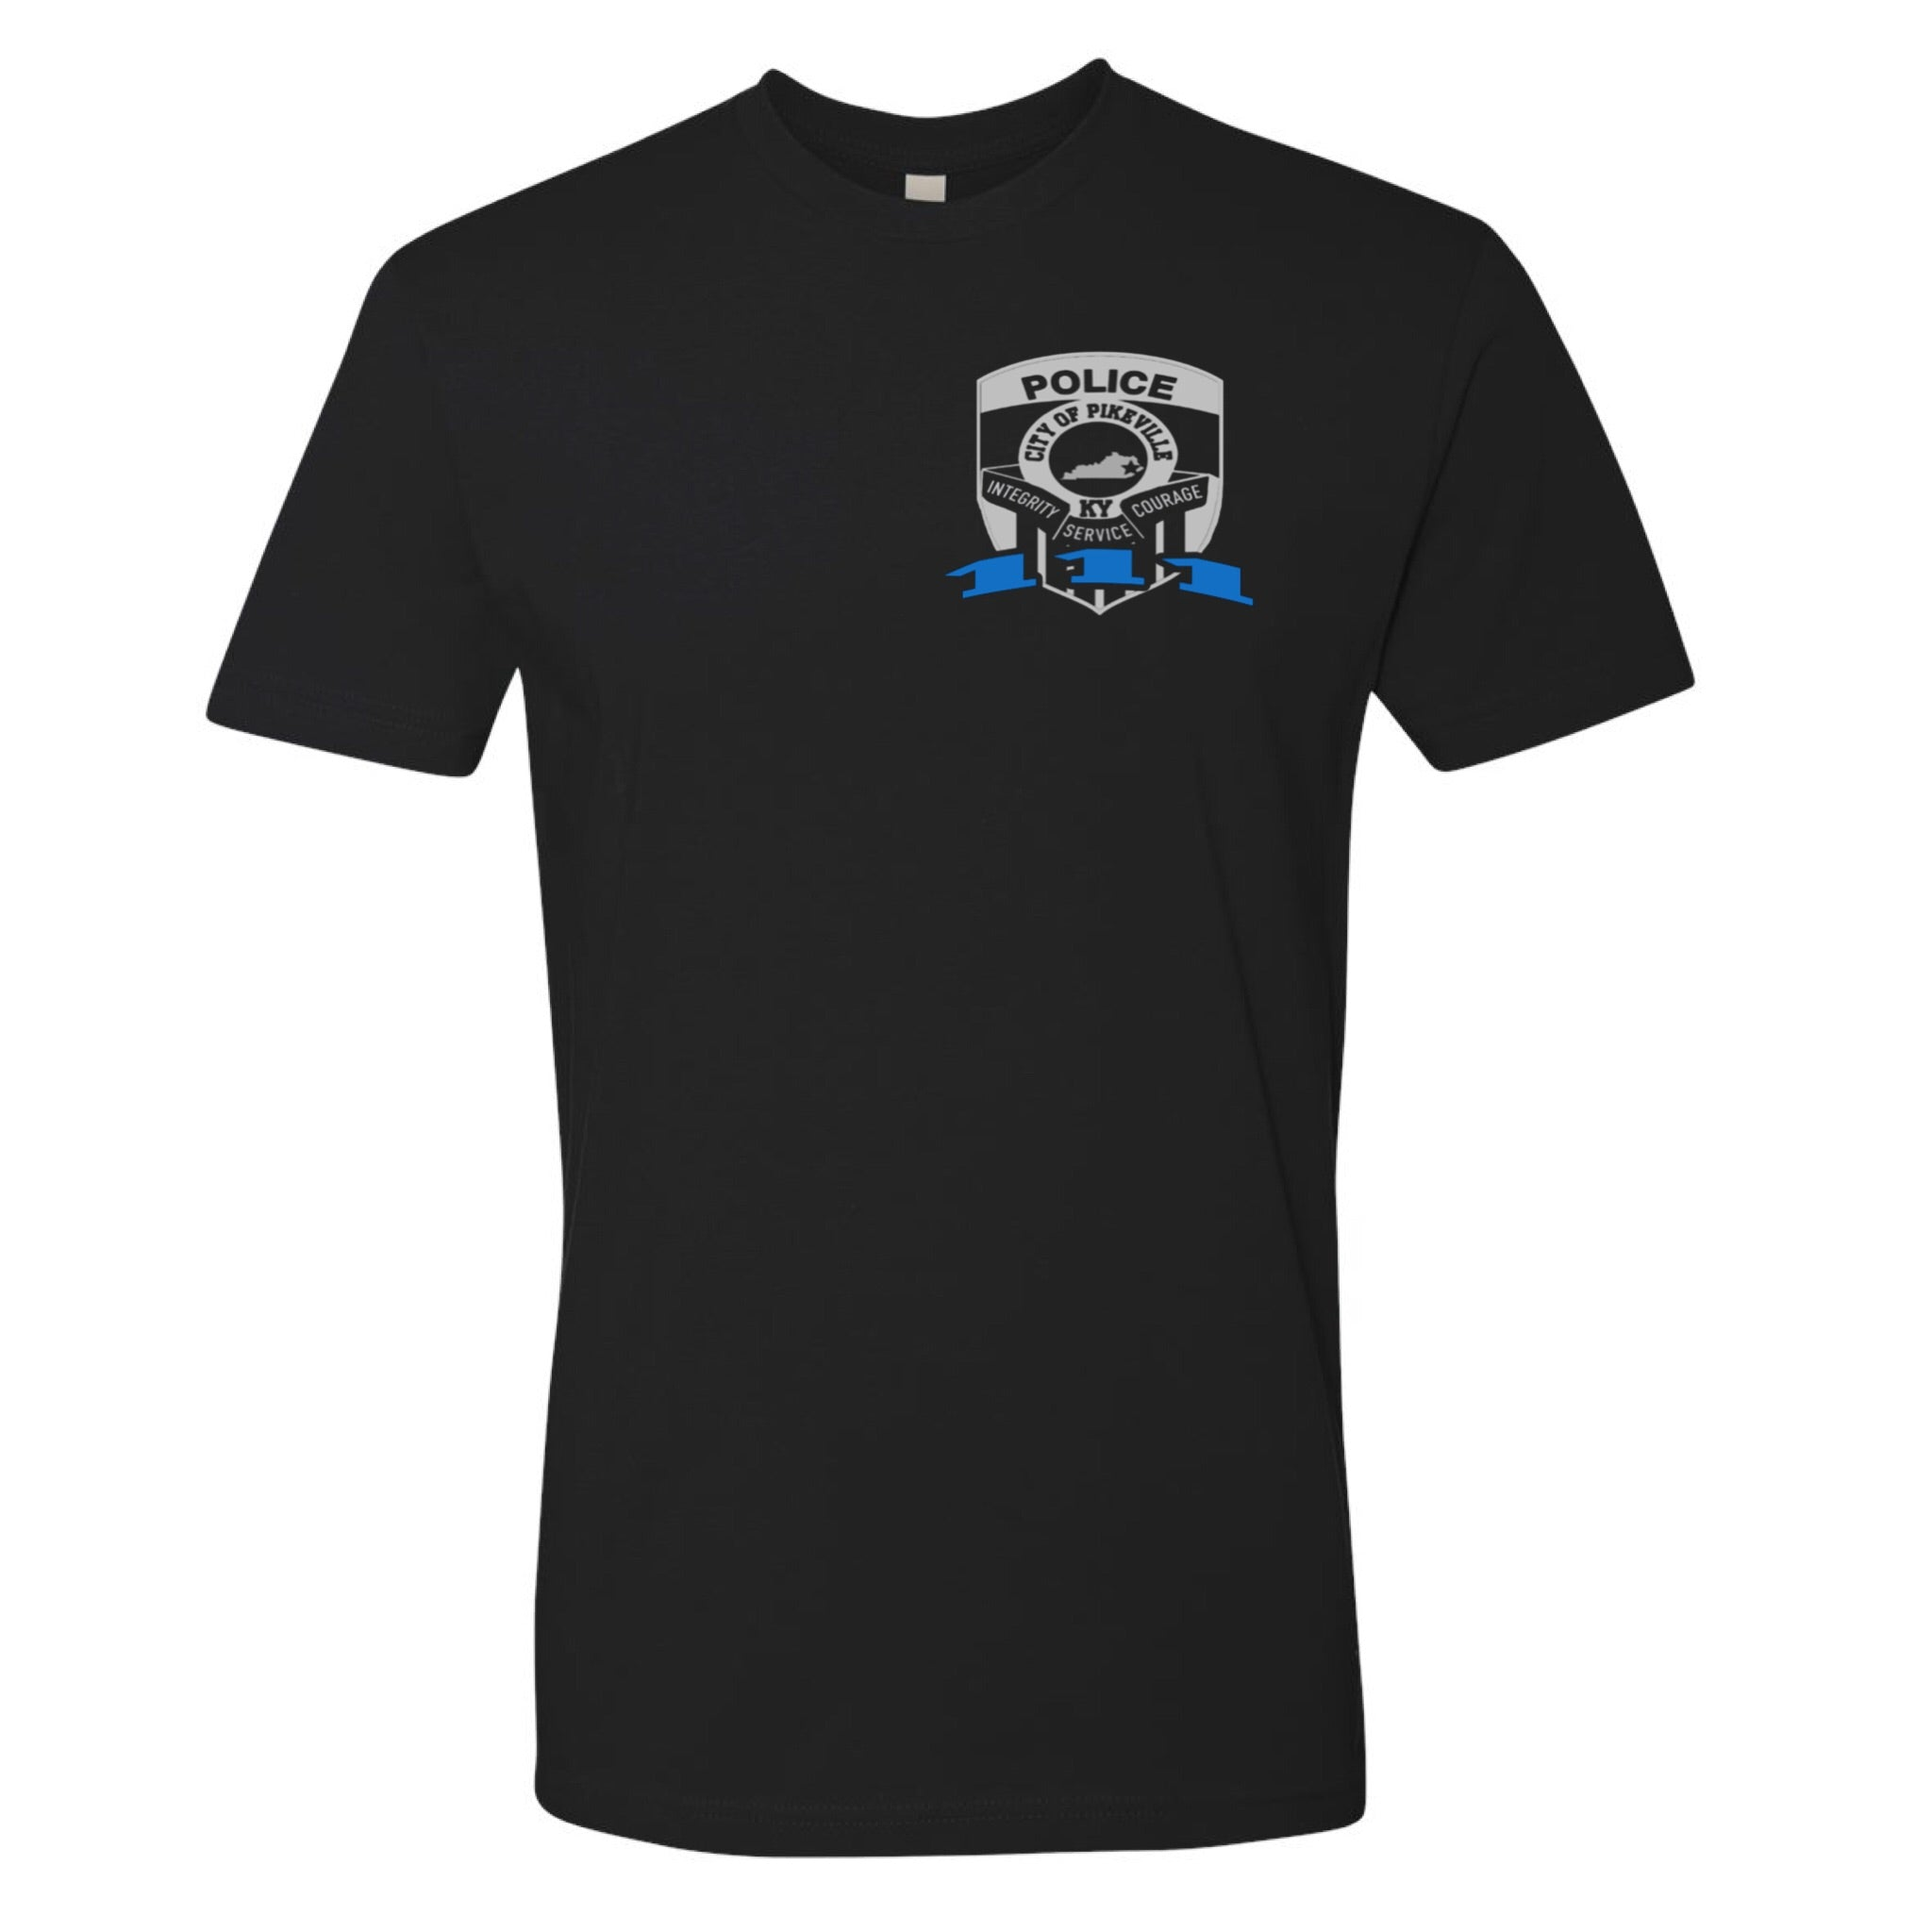 Officer Scotty Hamilton Memorial Shirt